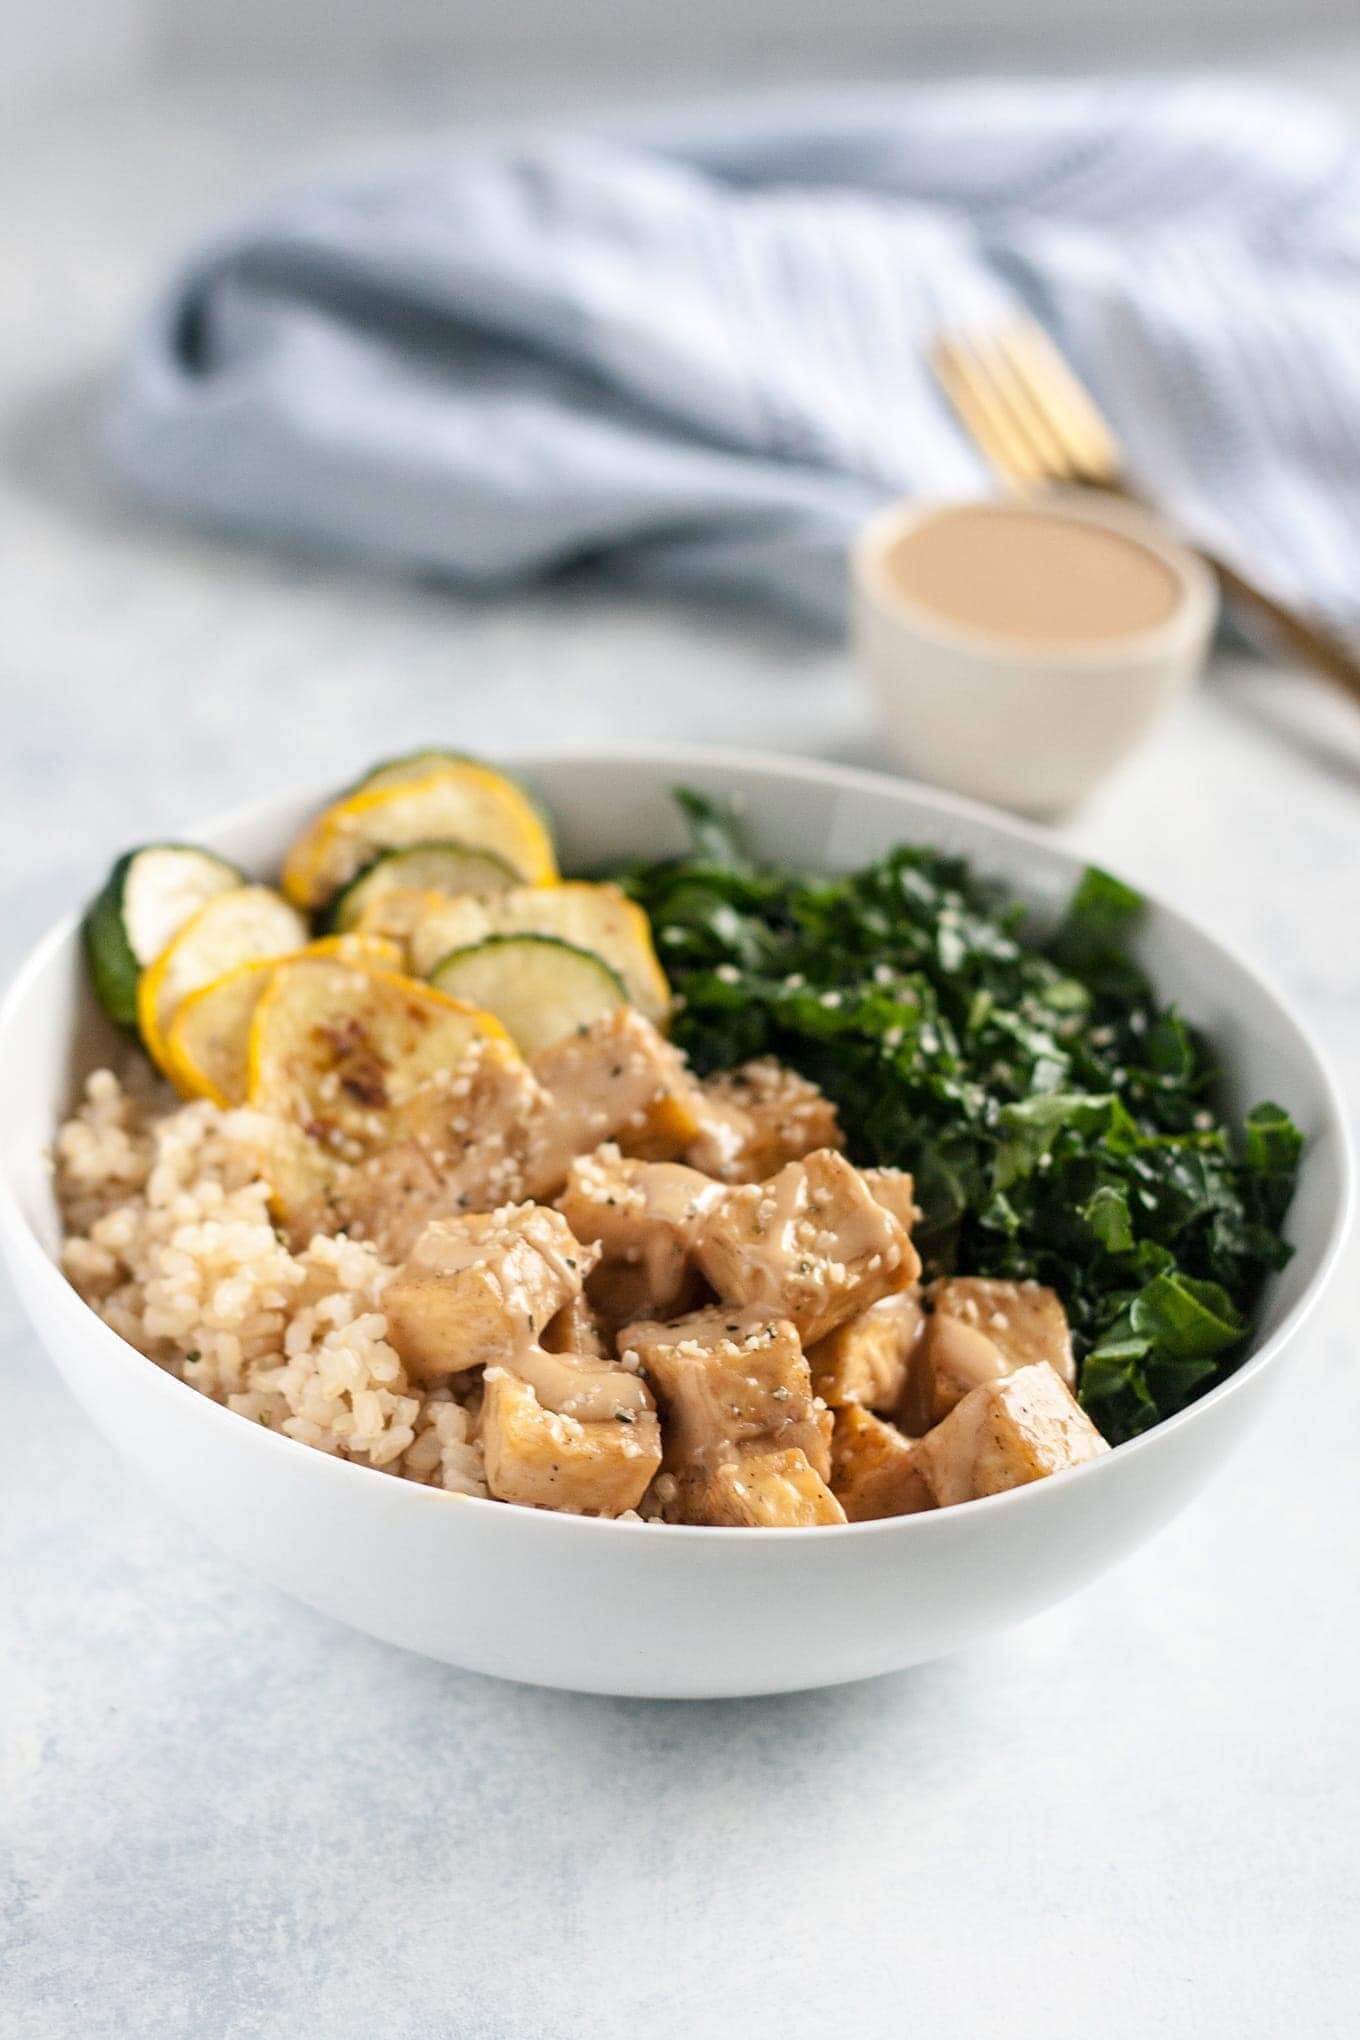 Vegan Almond Butter Tofu Bowl with Summer Squash